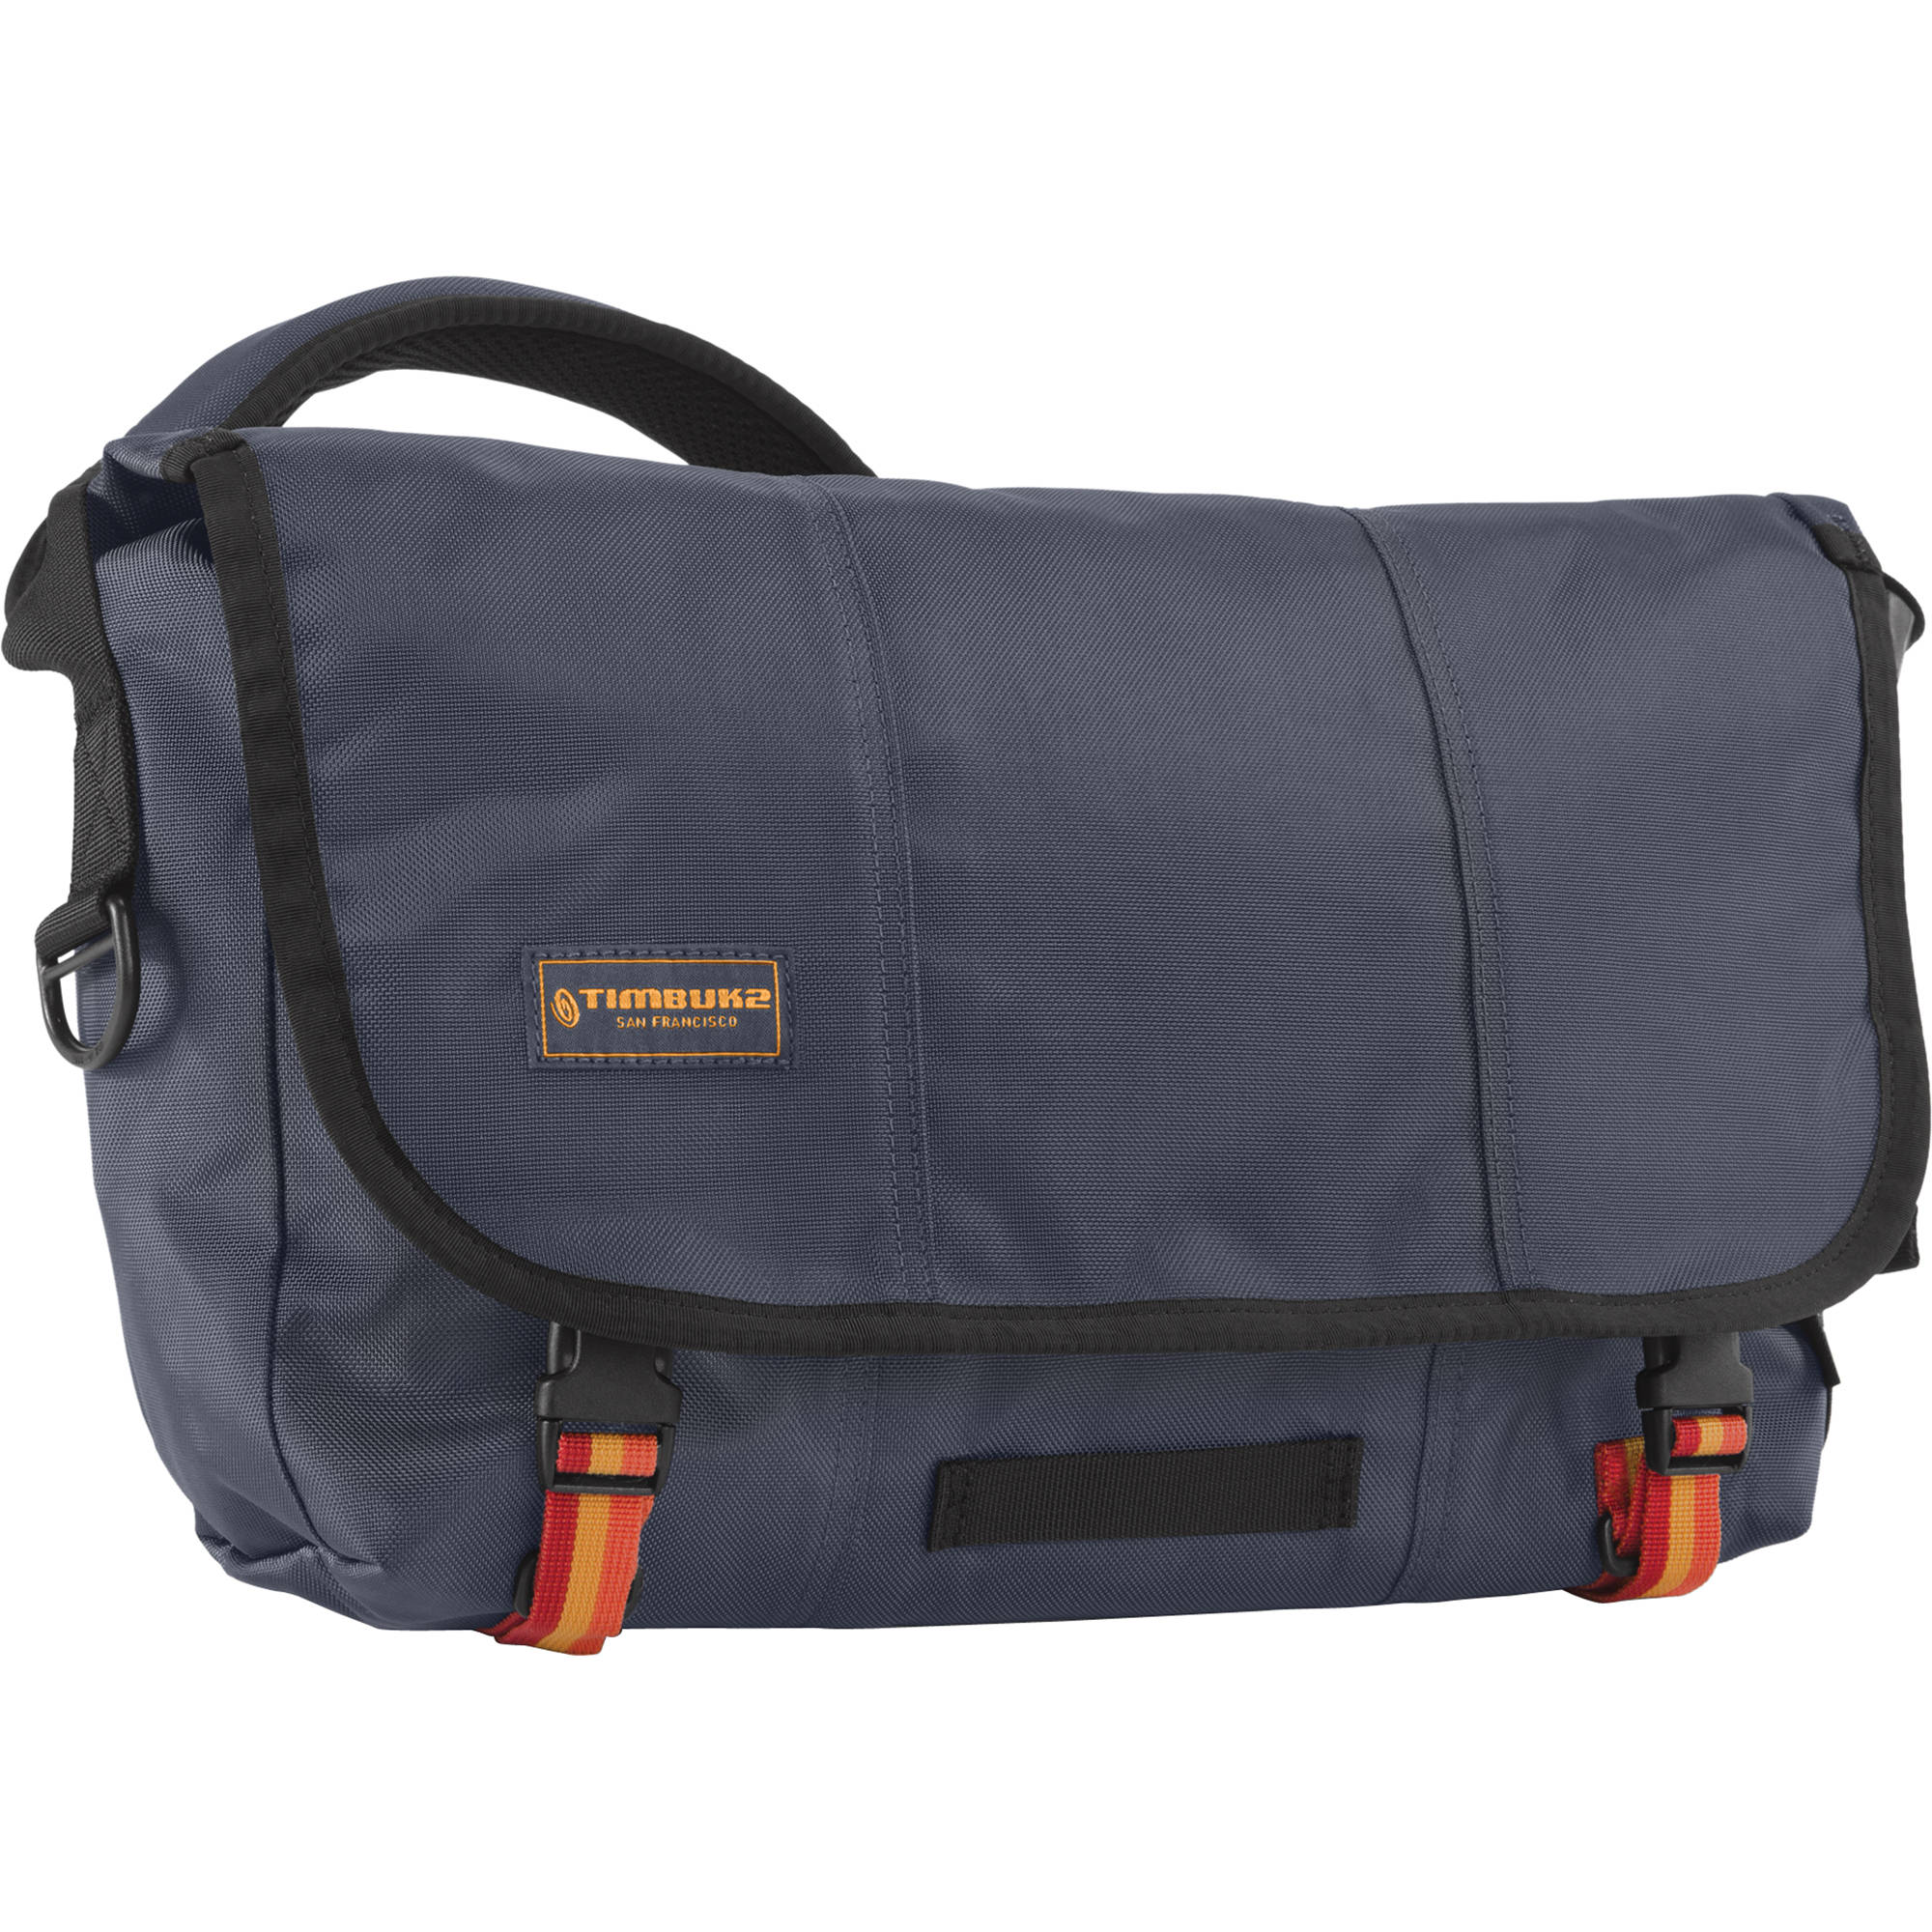 Timbuk2 Classic Messenger Bag 116-1-4131 B&H Photo Video